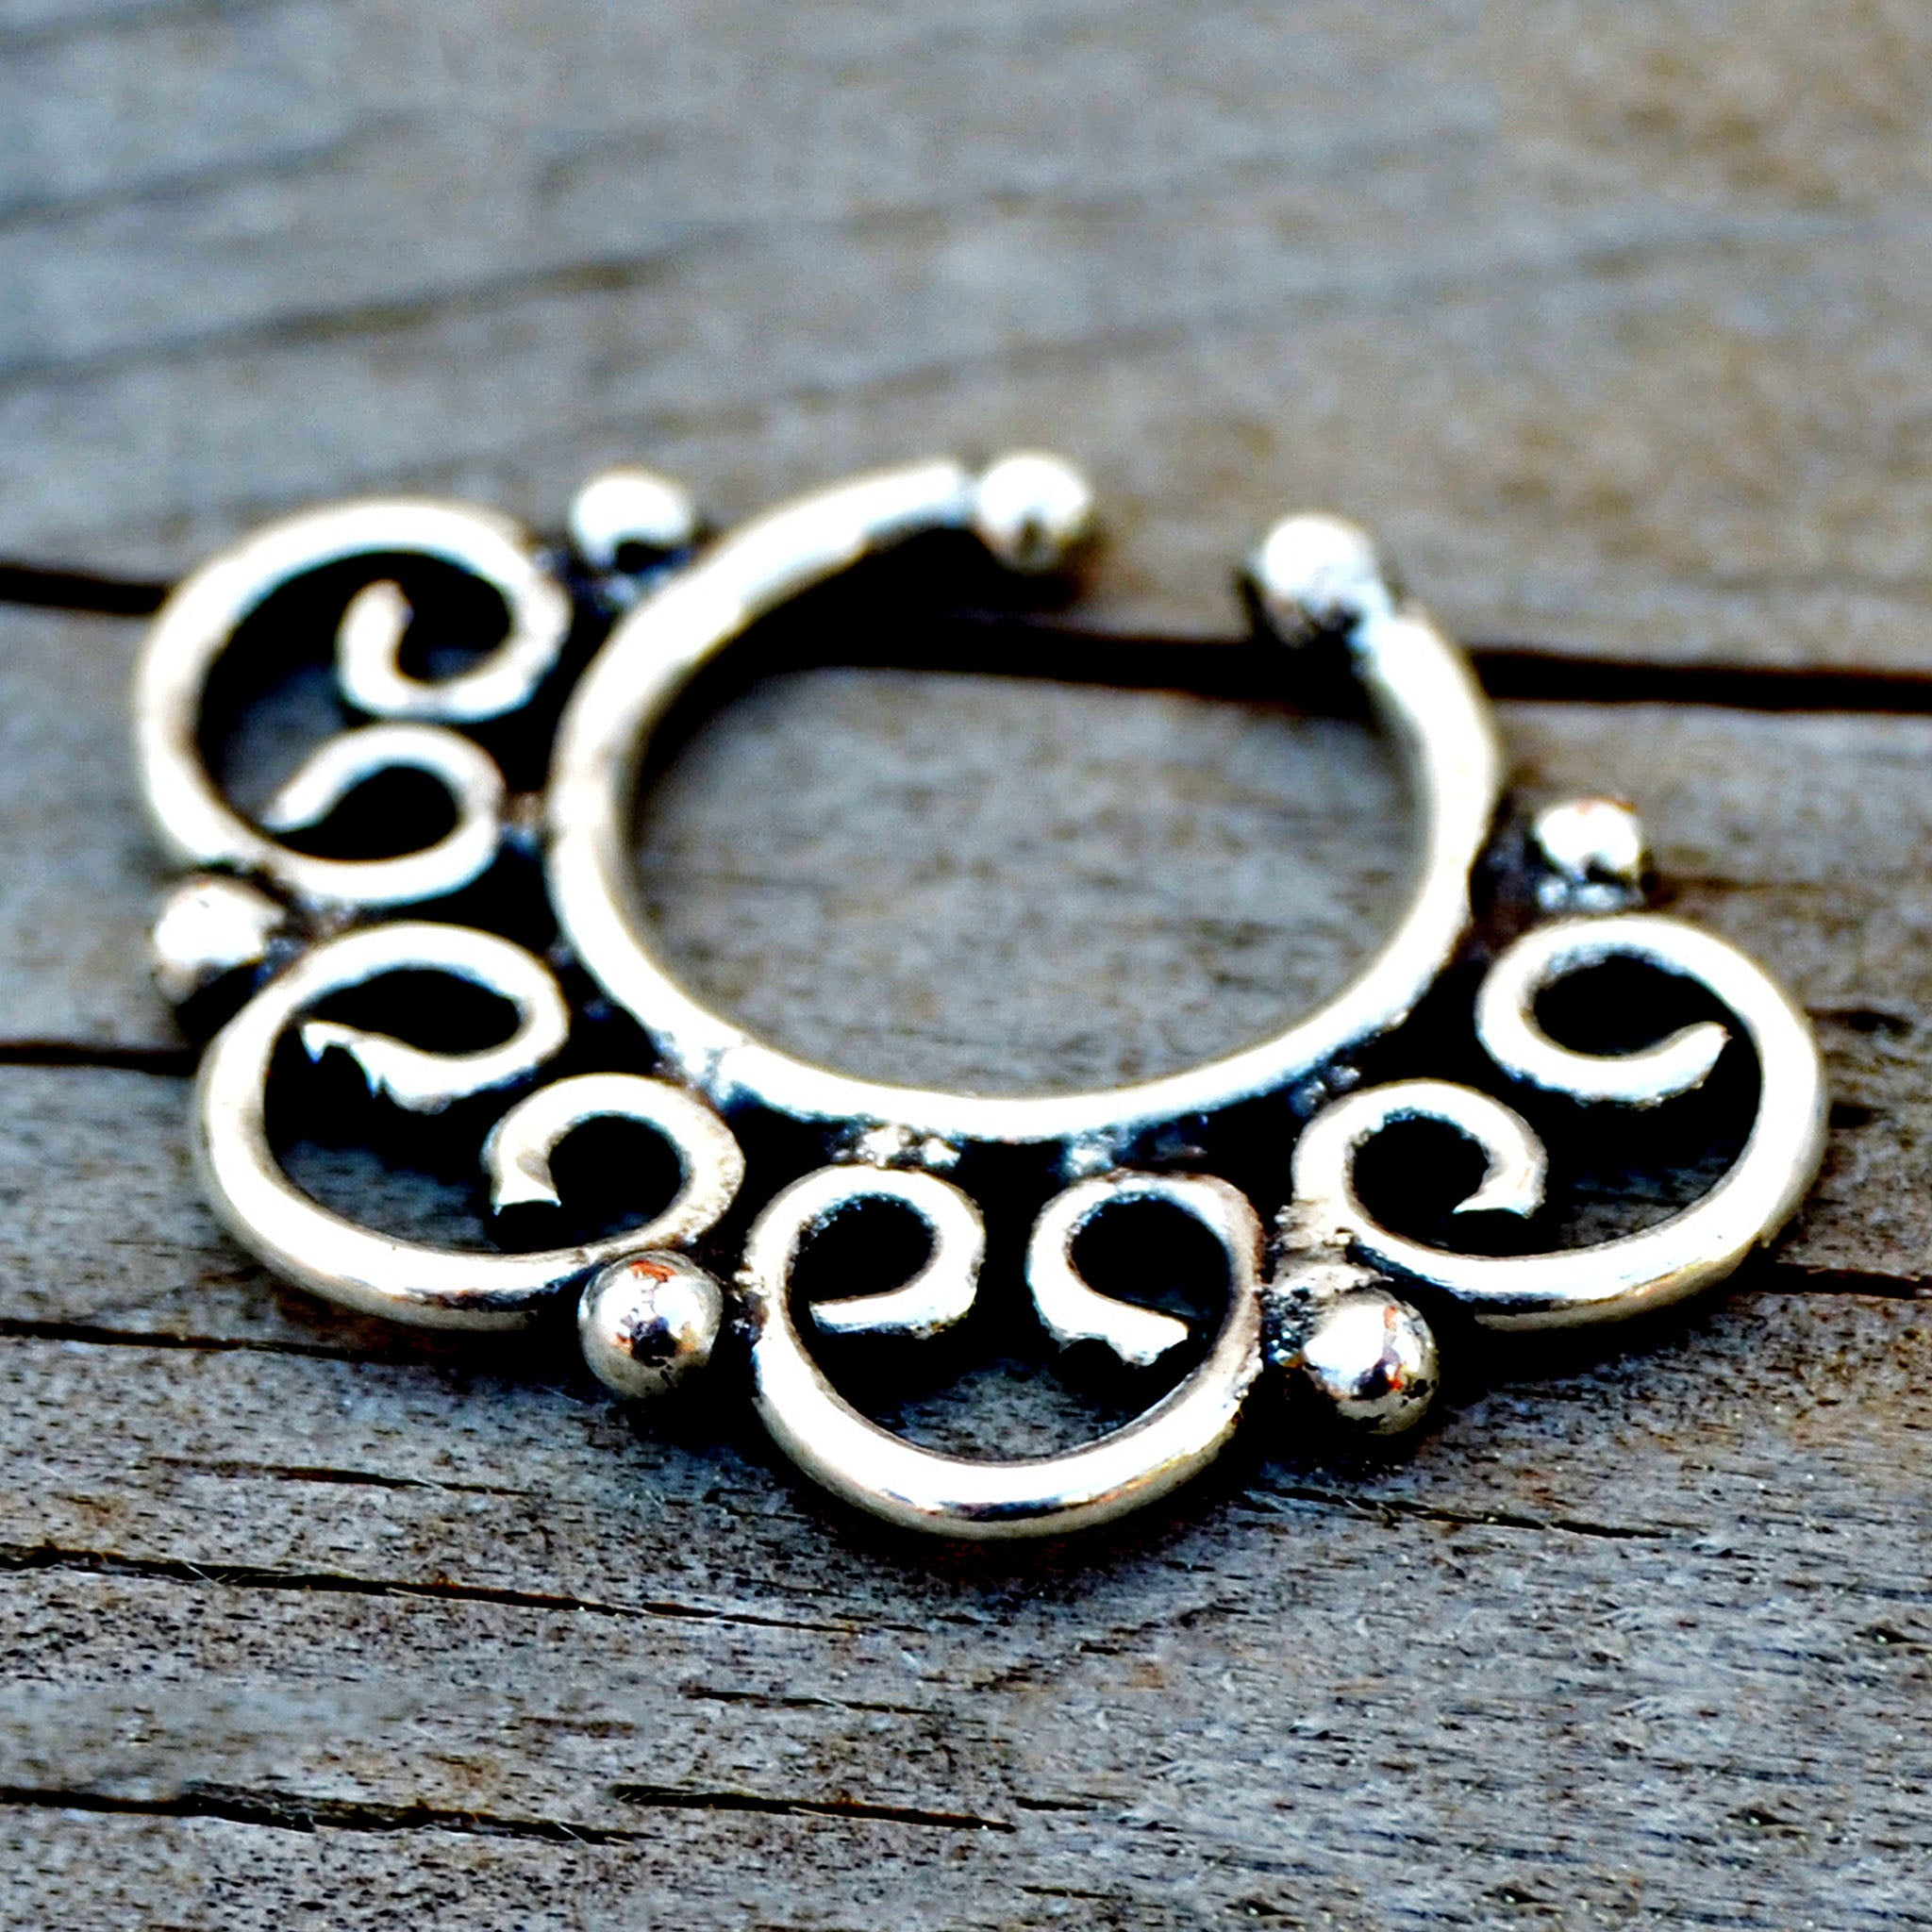 Indian style septum nose ring